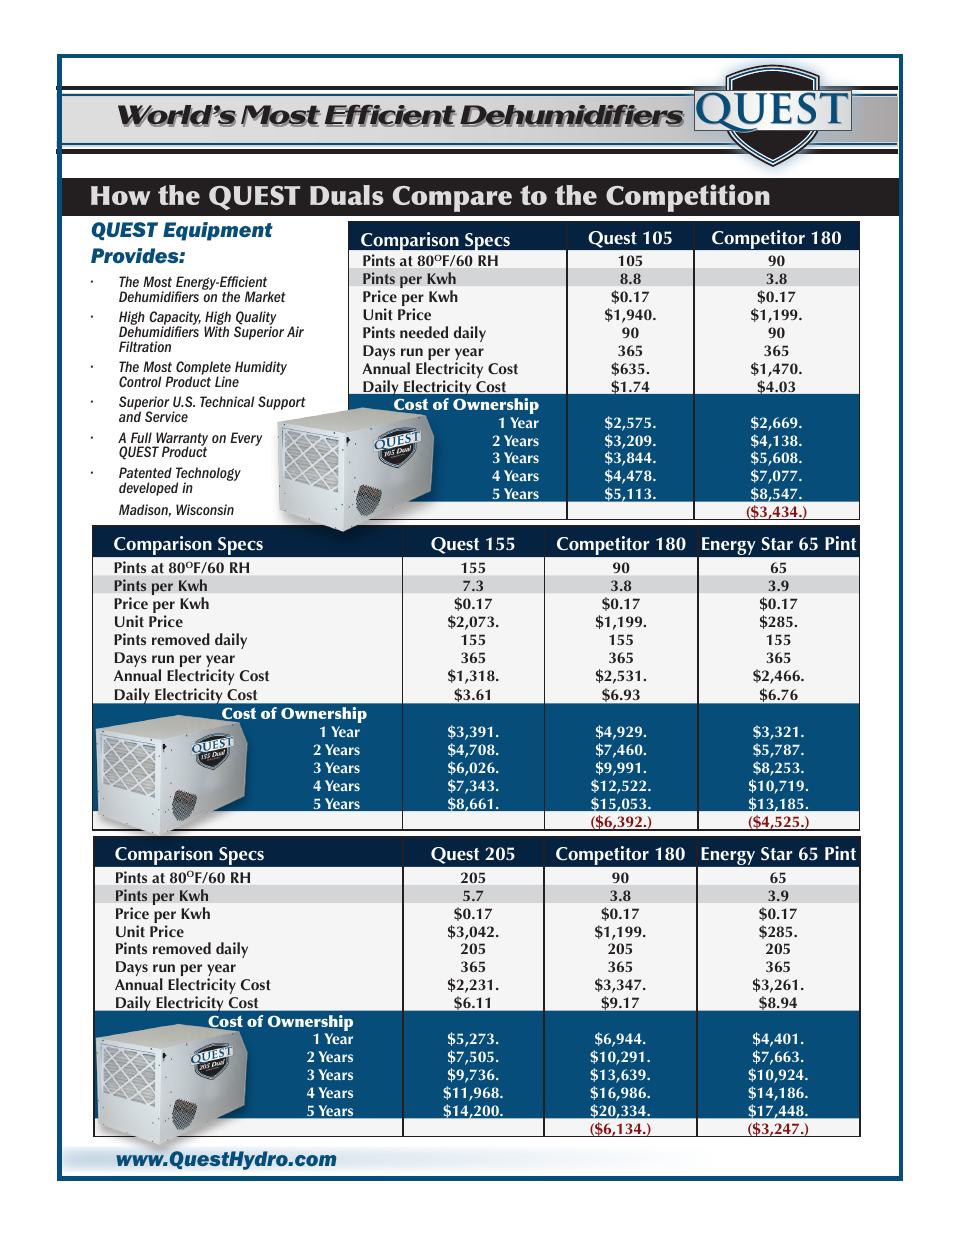 Quest, How the quest duals compare to the competition, World's most